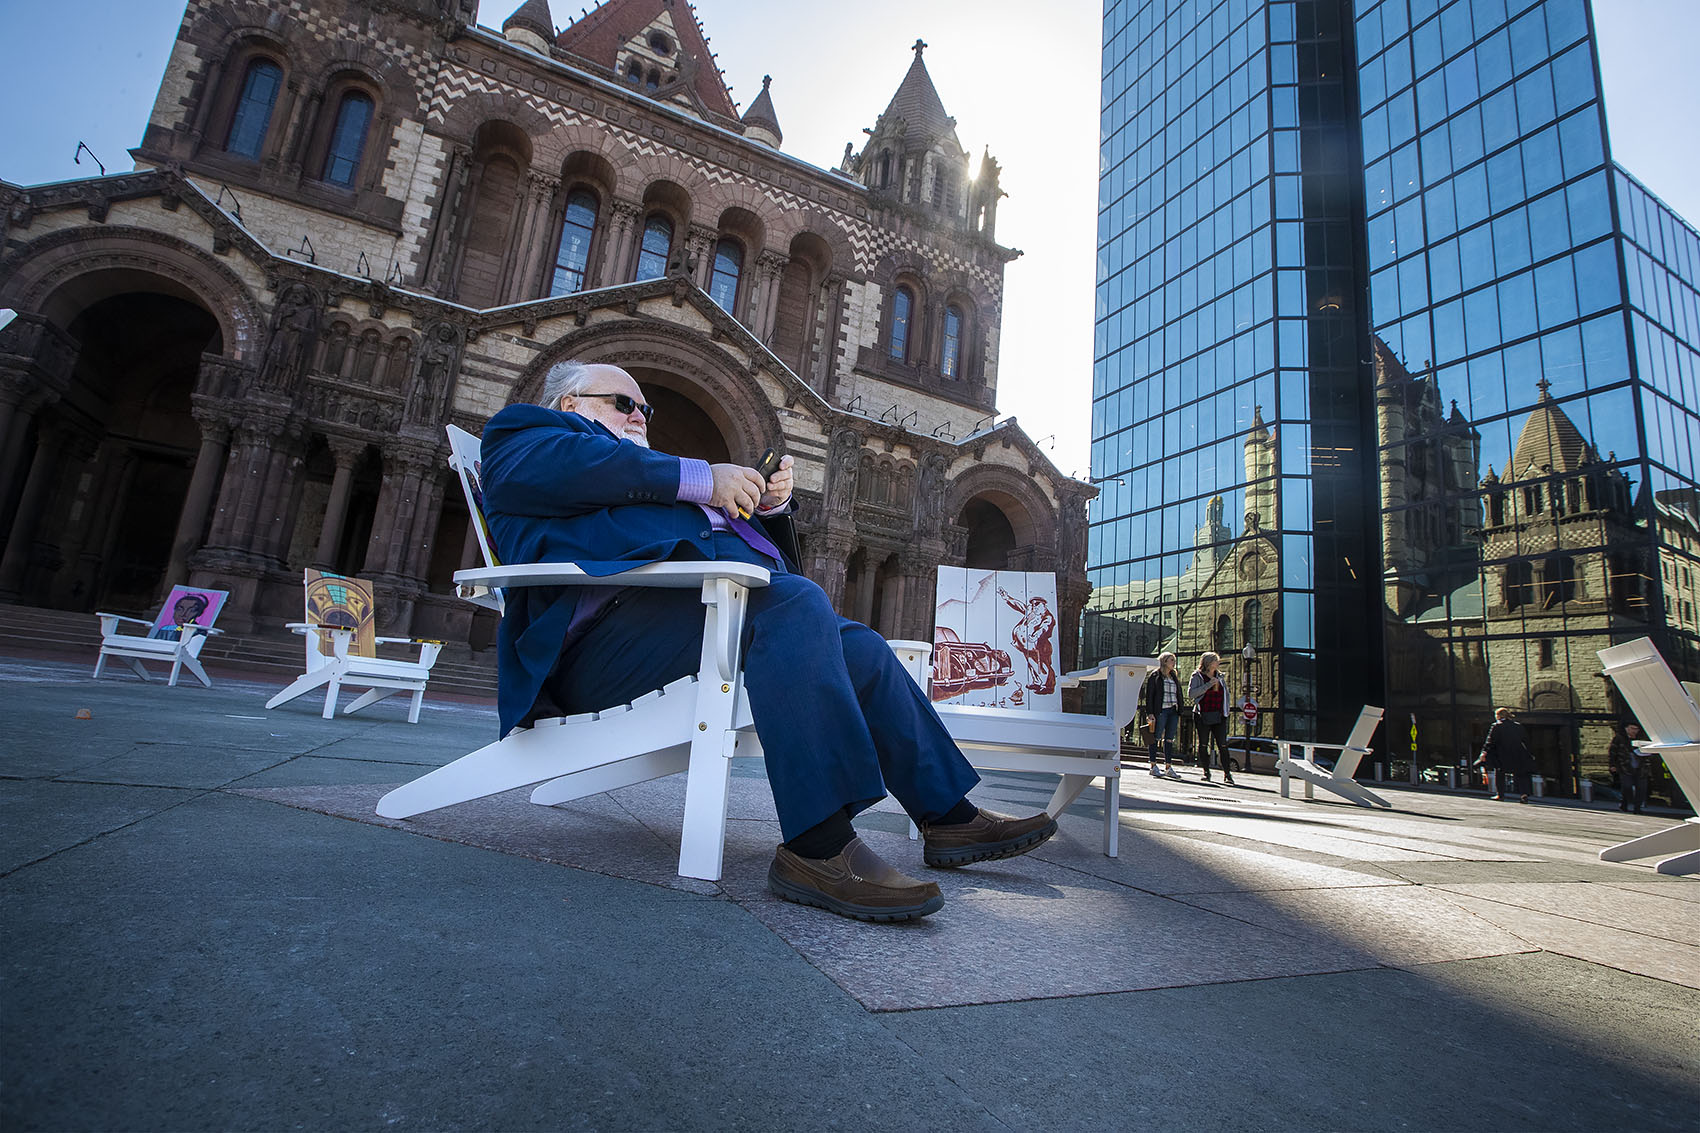 Jerome Wolter stops and sits on one of the Adirondack chairs on his way to a job interview. (Jesse Costa/WBUR)